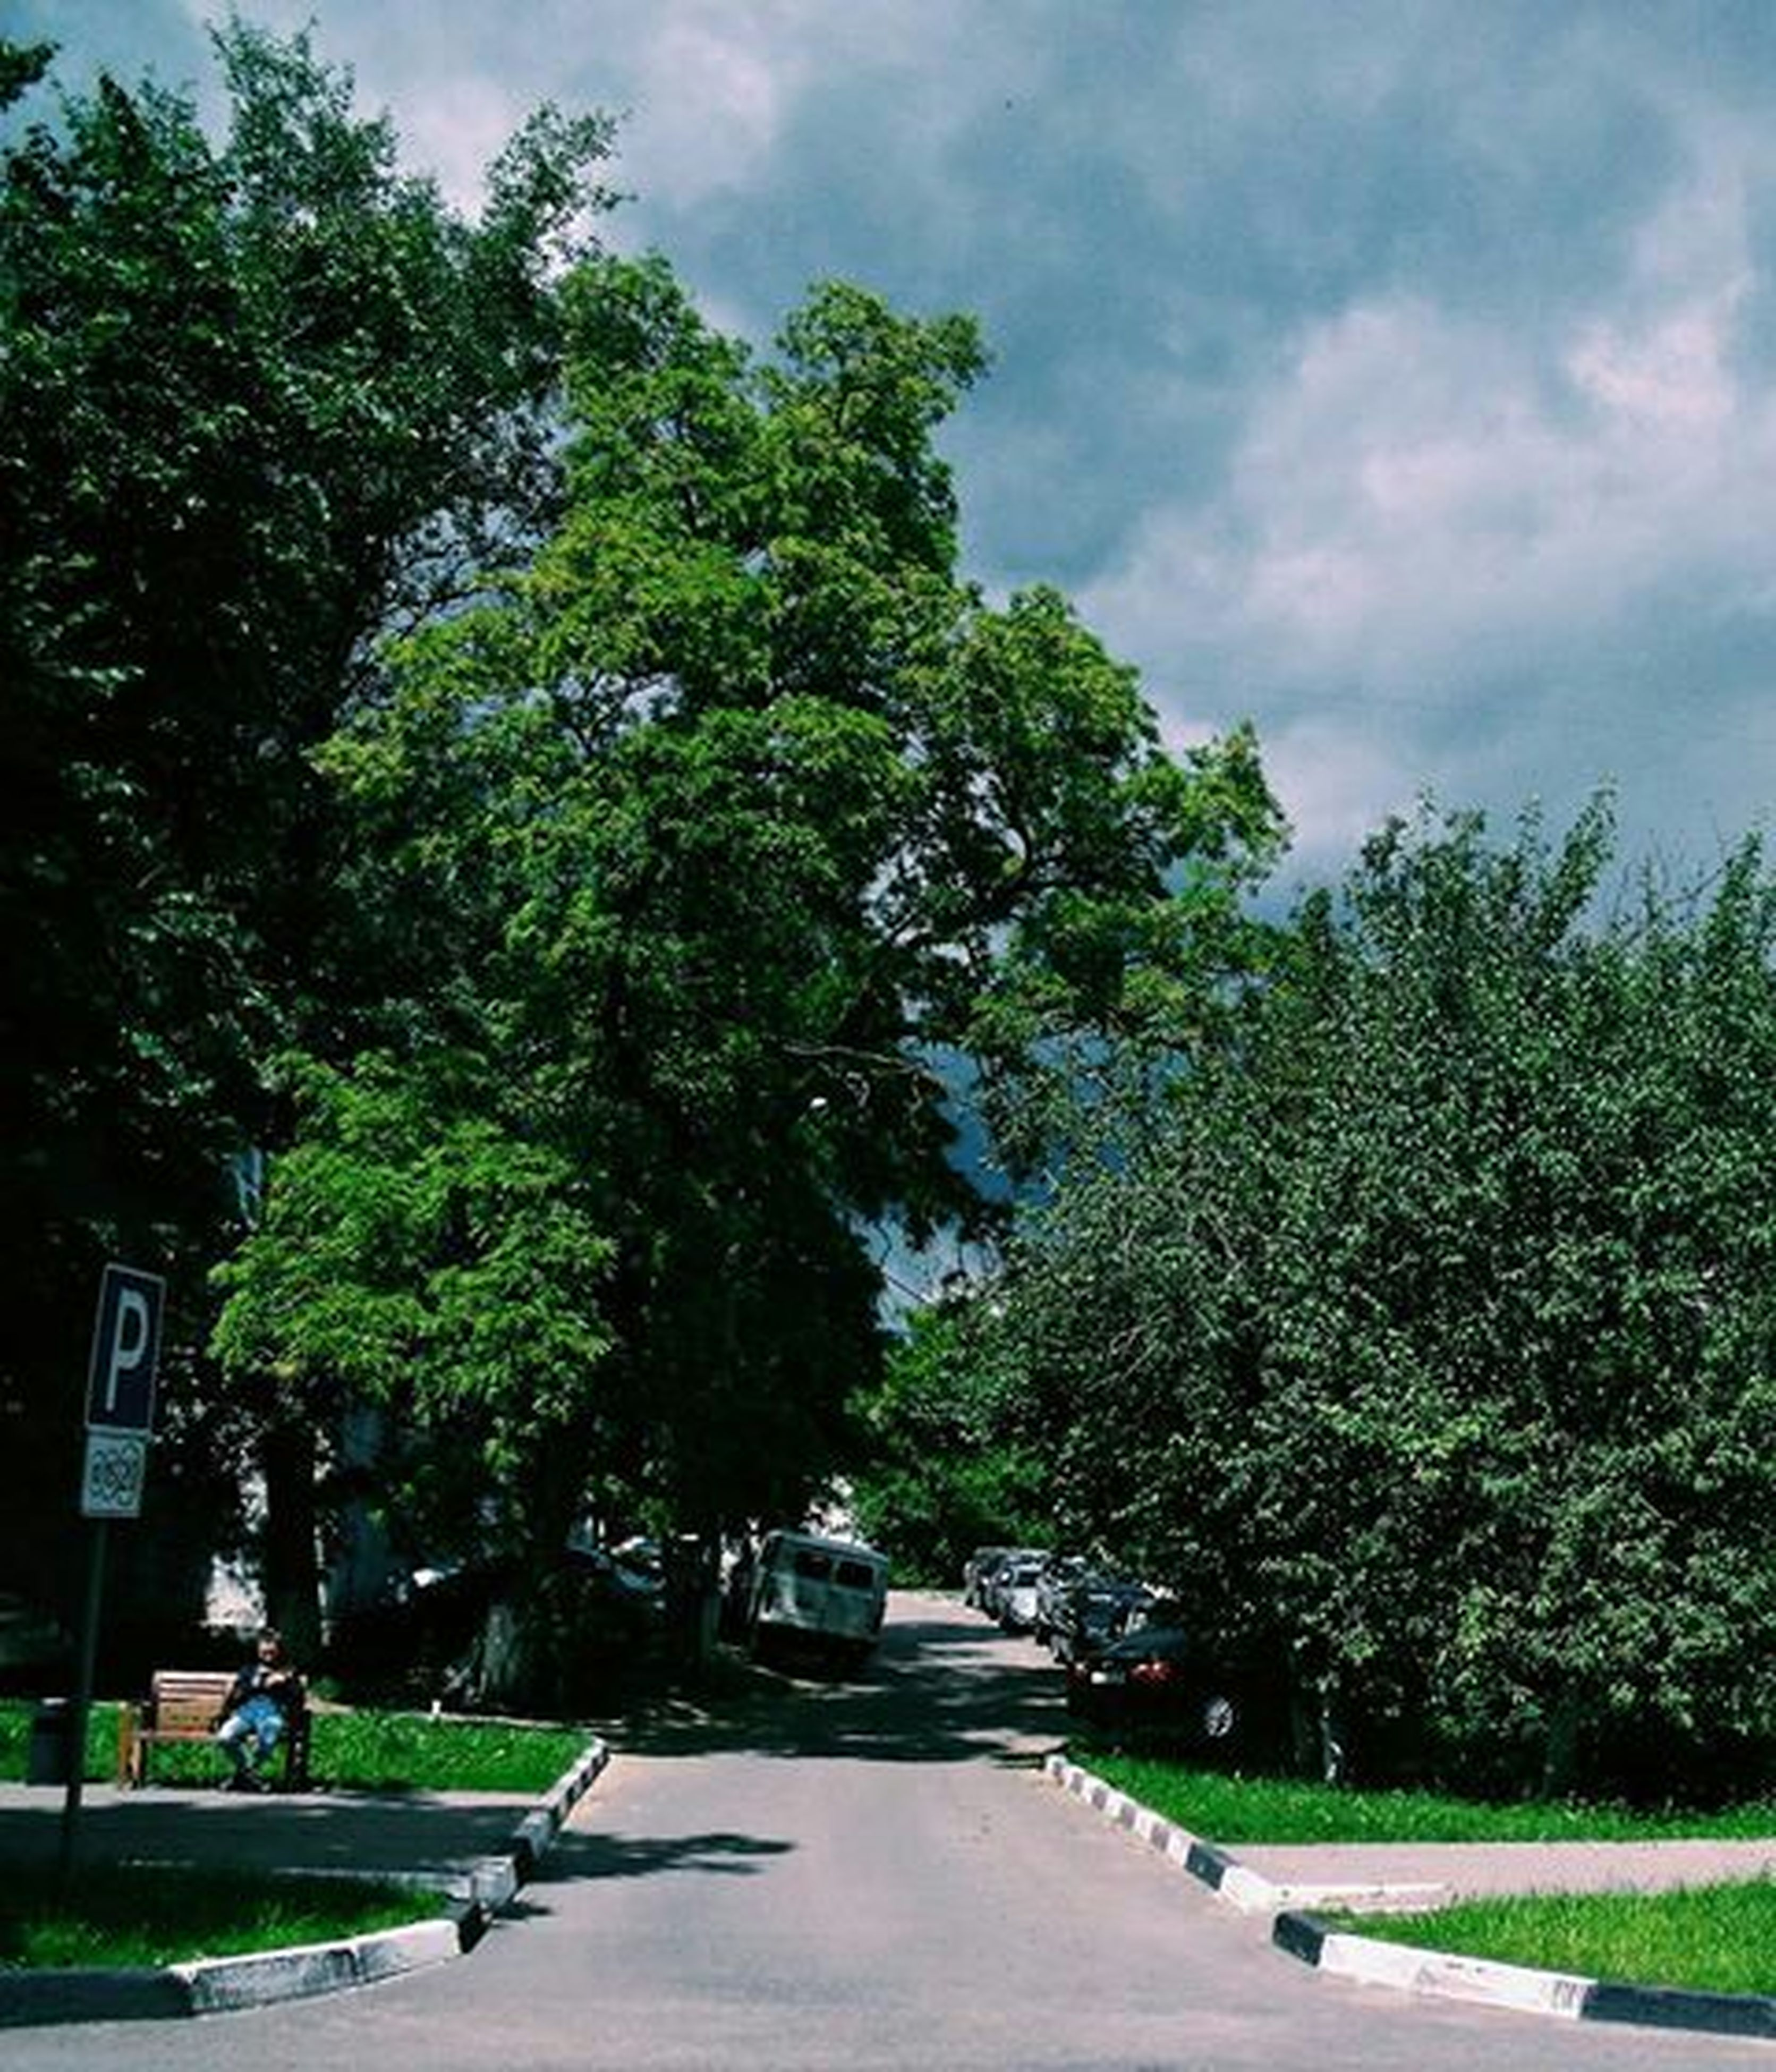 tree, transportation, the way forward, road, car, street, land vehicle, sky, green color, diminishing perspective, mode of transport, growth, treelined, vanishing point, nature, outdoors, cloud - sky, day, sunlight, empty